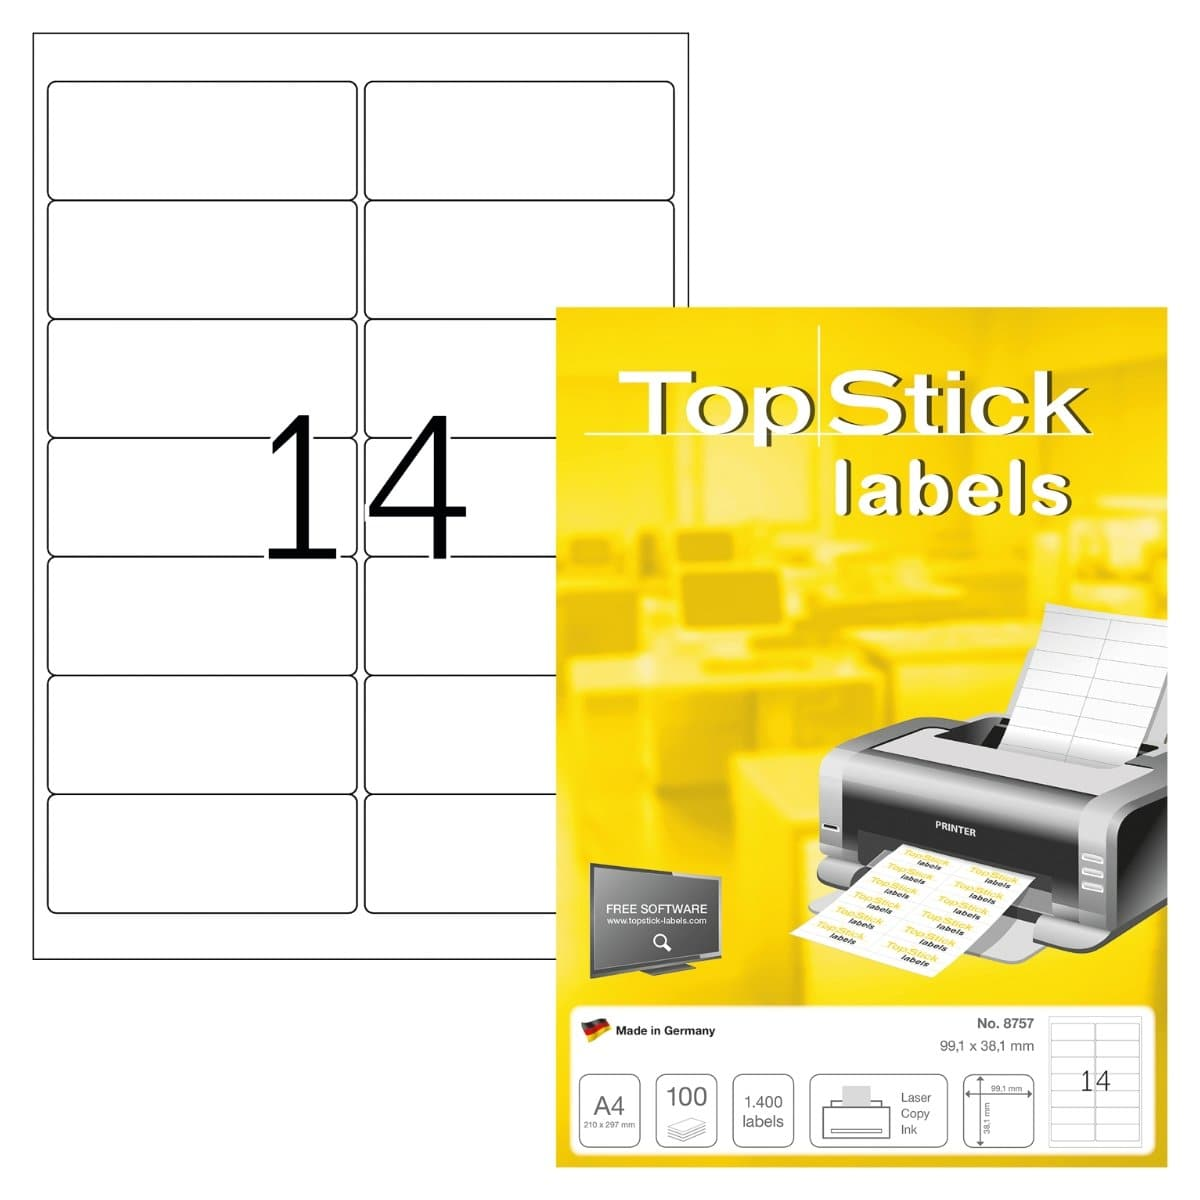 TopStick labels 14 labels/sheet, round corners, 99.1 x 38.1 mm, 100sheets/pack, White